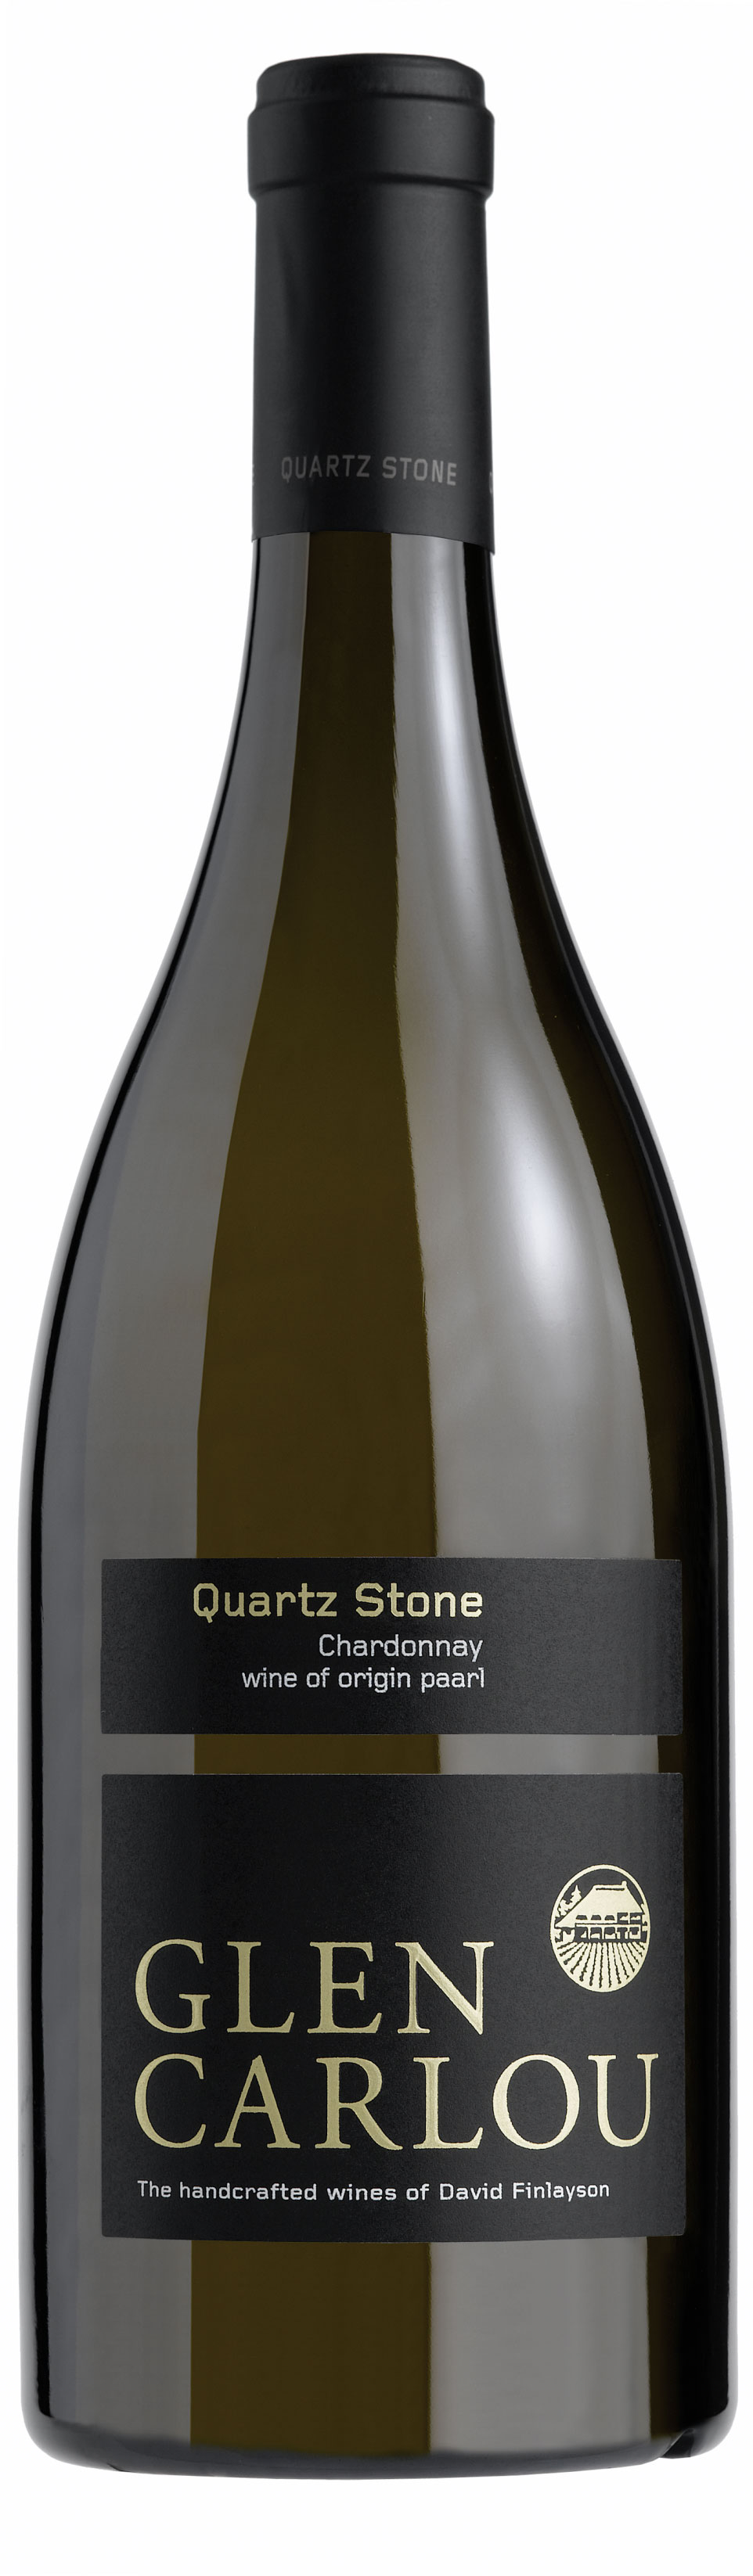 2014 Glen Carlou Quartz Stone Chardonnay Wine of Origin Paarl